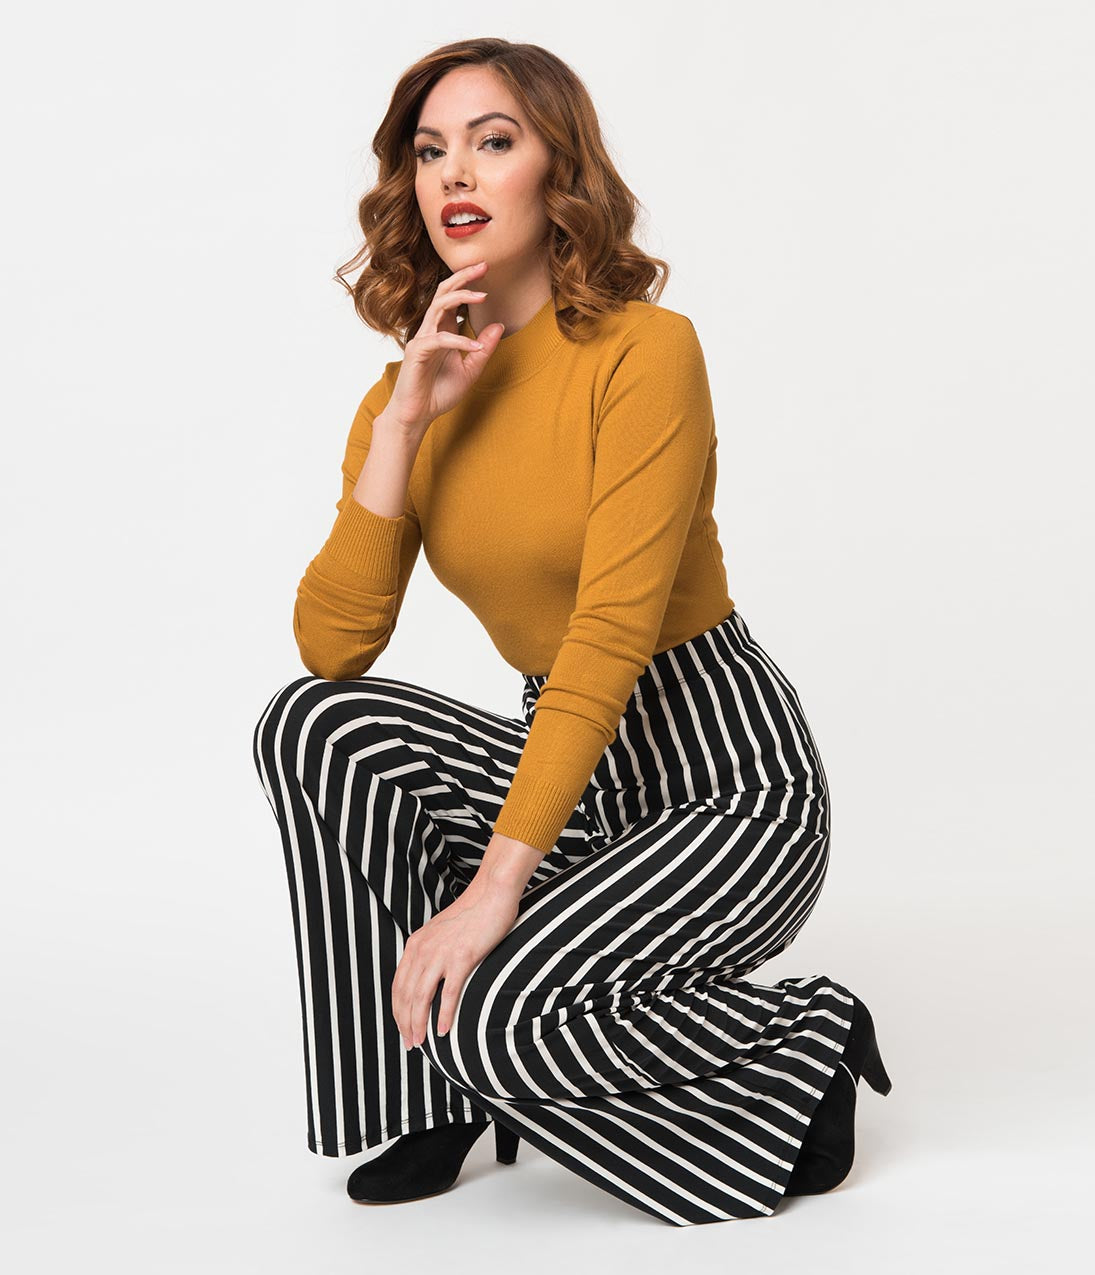 Vintage High Waisted Trousers, Sailor Pants, Jeans Retro Style Black  White Stripe Stretch Knit Palazzo Pant $42.00 AT vintagedancer.com